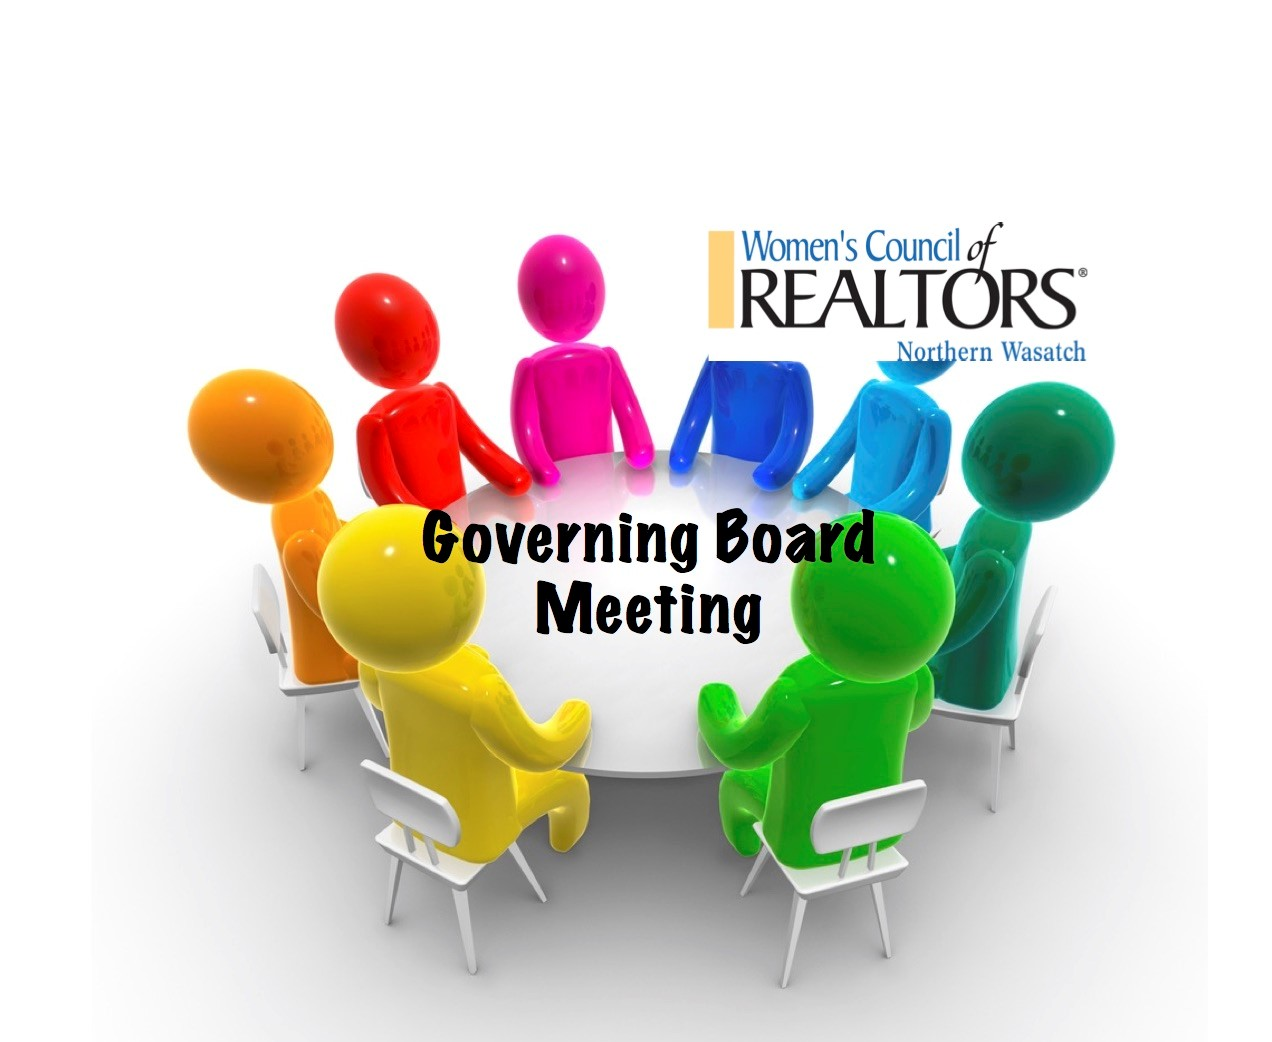 Women\'s Council of Realtors- Northern Wasatch - Governing Board ...